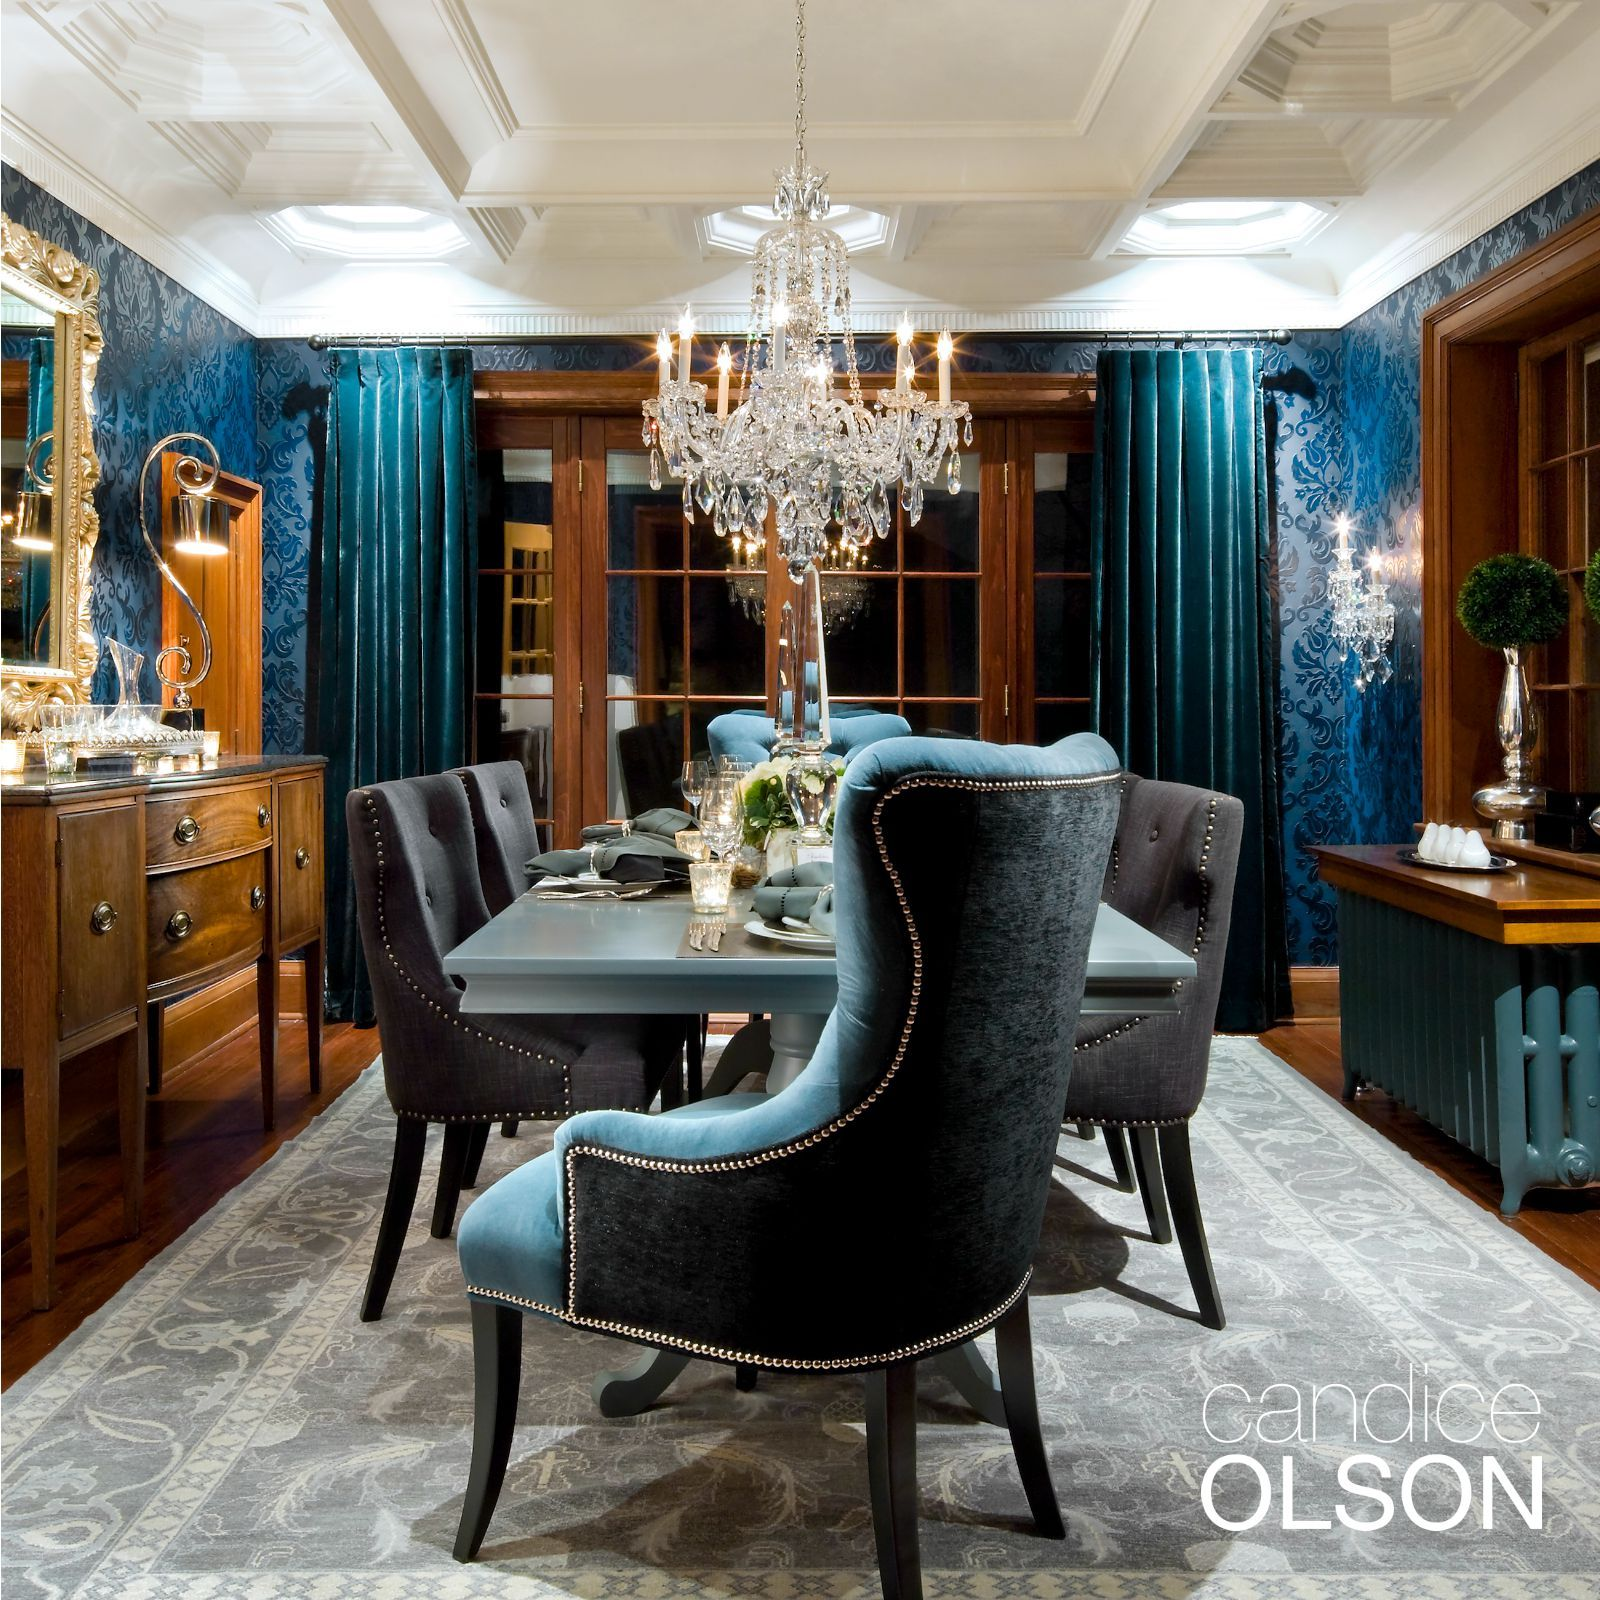 Candice Olson Traditional Living Rooms: Pin By Candice Olson Design On LIGHTING ADVICE • Dining